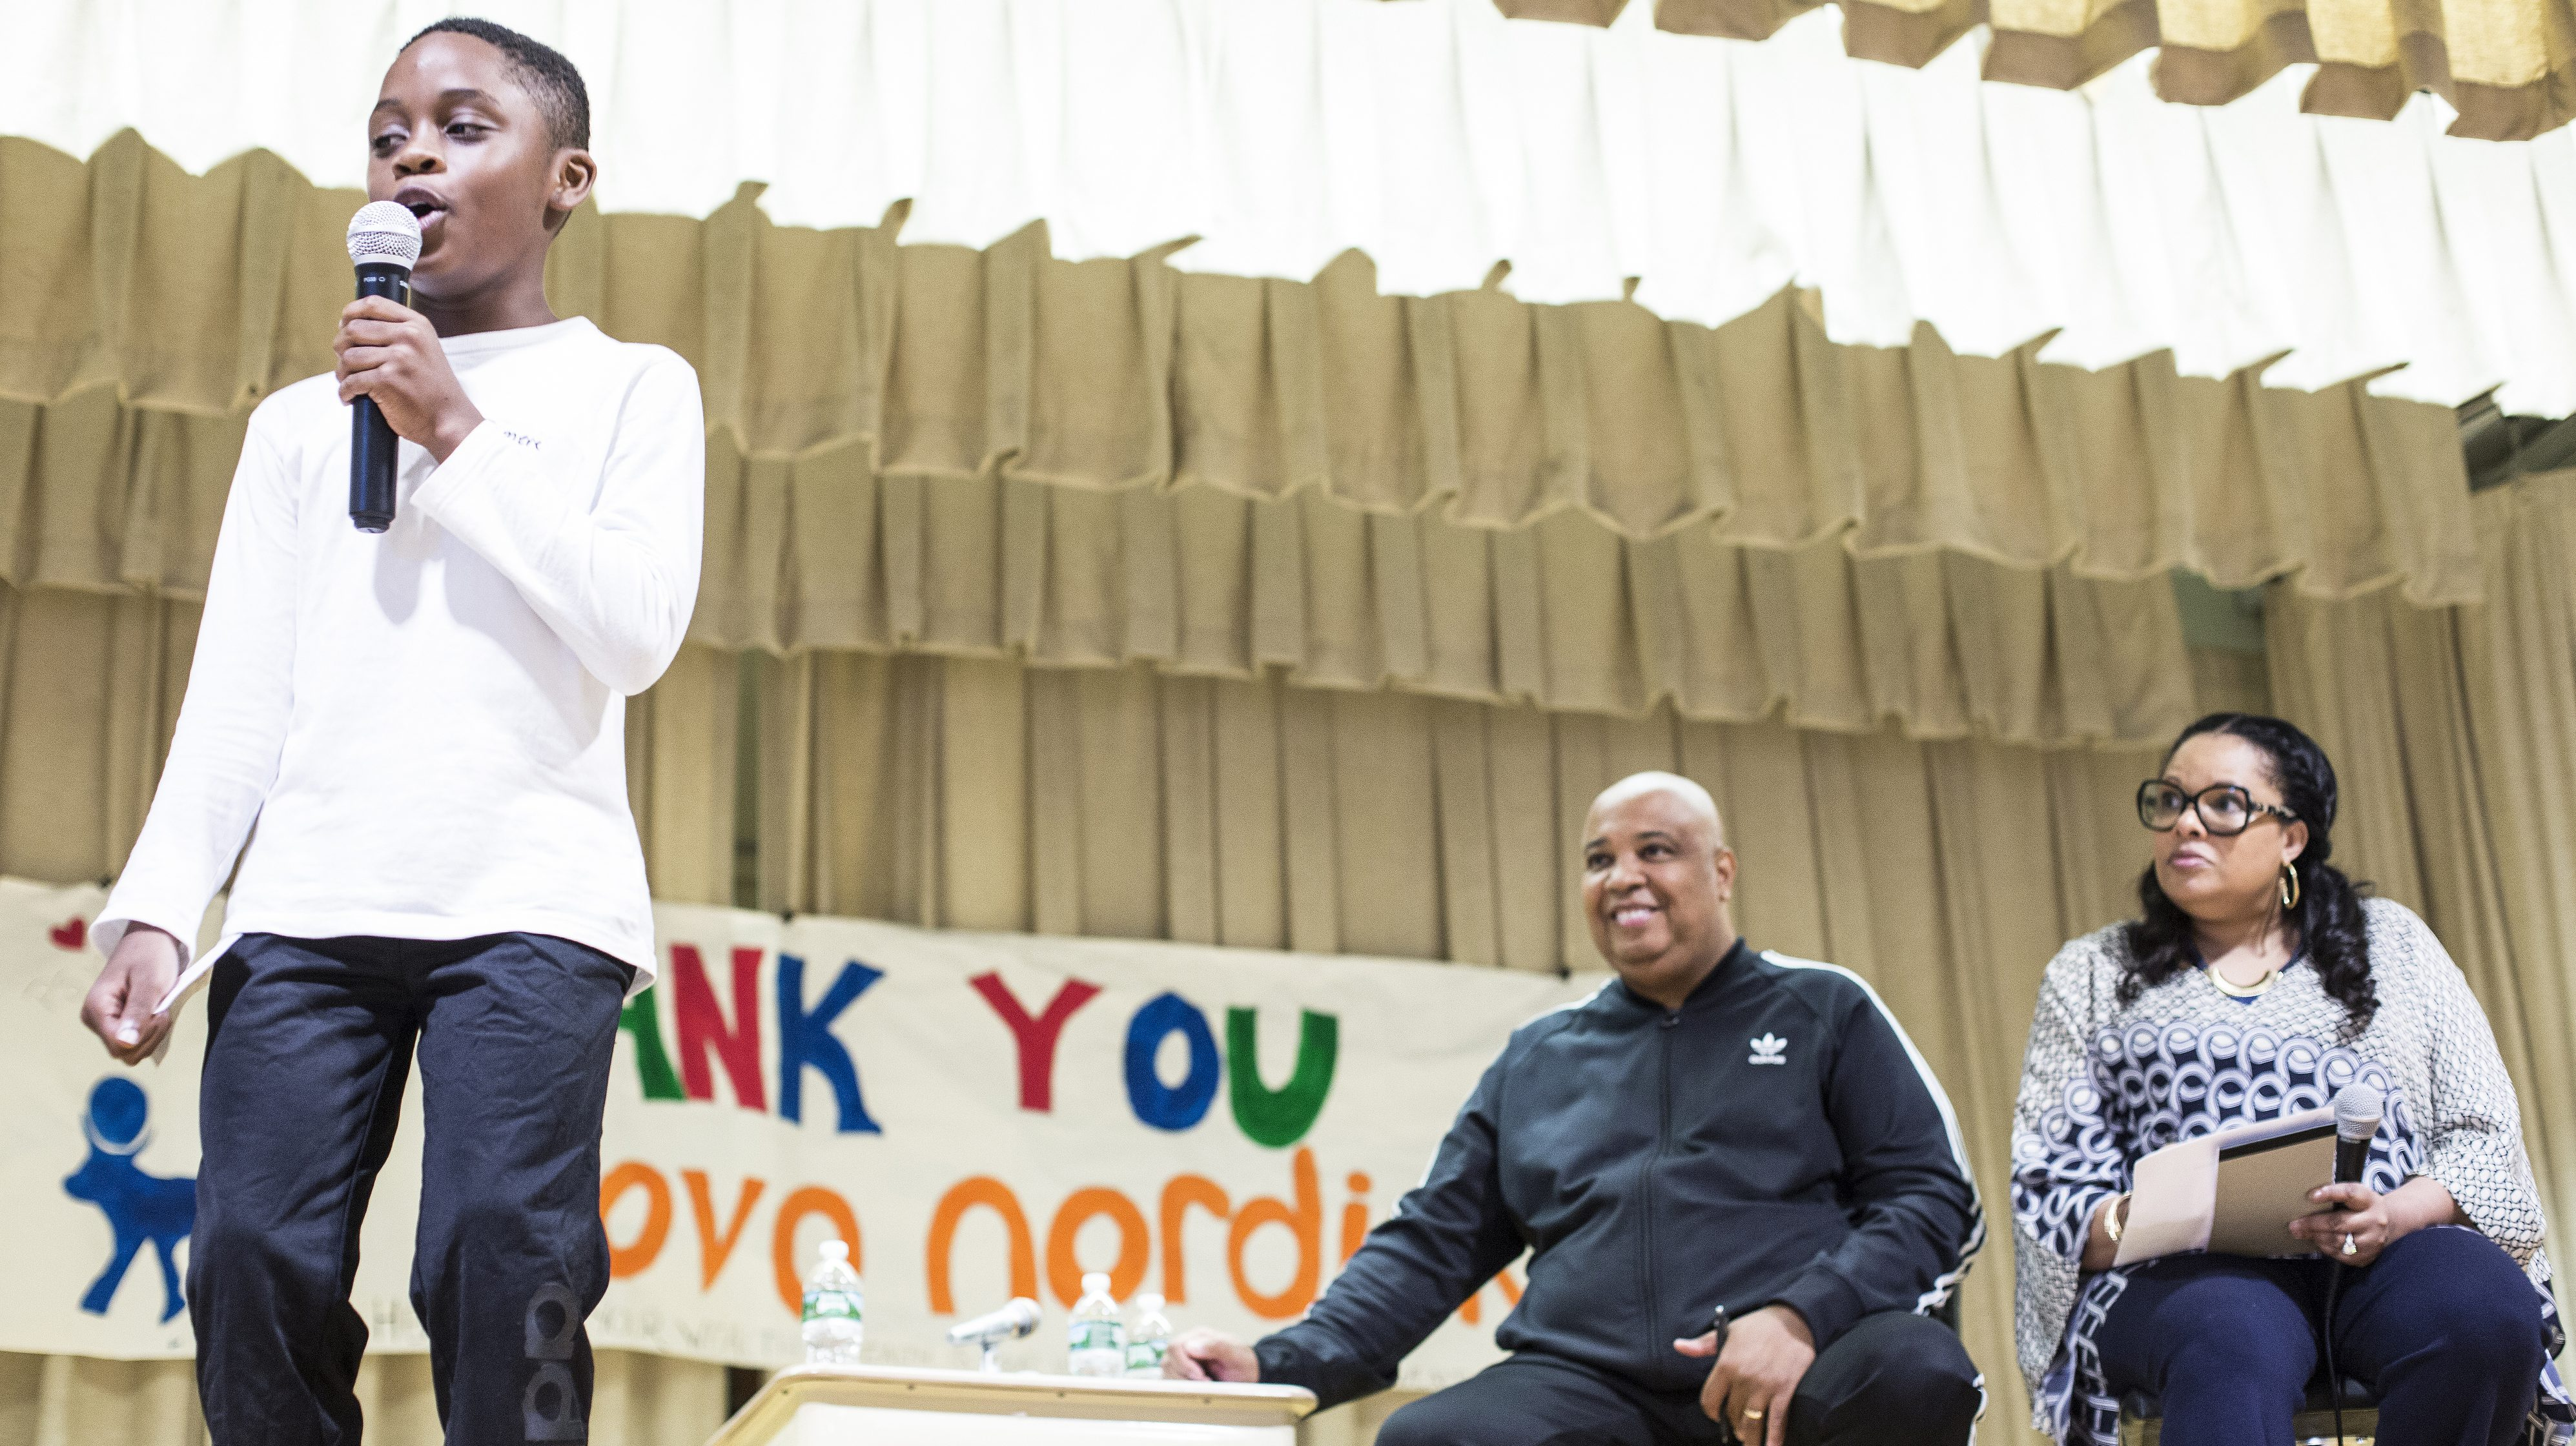 novo nordisk ambassadors rev run center and justine simmons right look on as a student at ps 104 the bays water school in far rockaway new york - When Christmas Comes To Town Karaoke